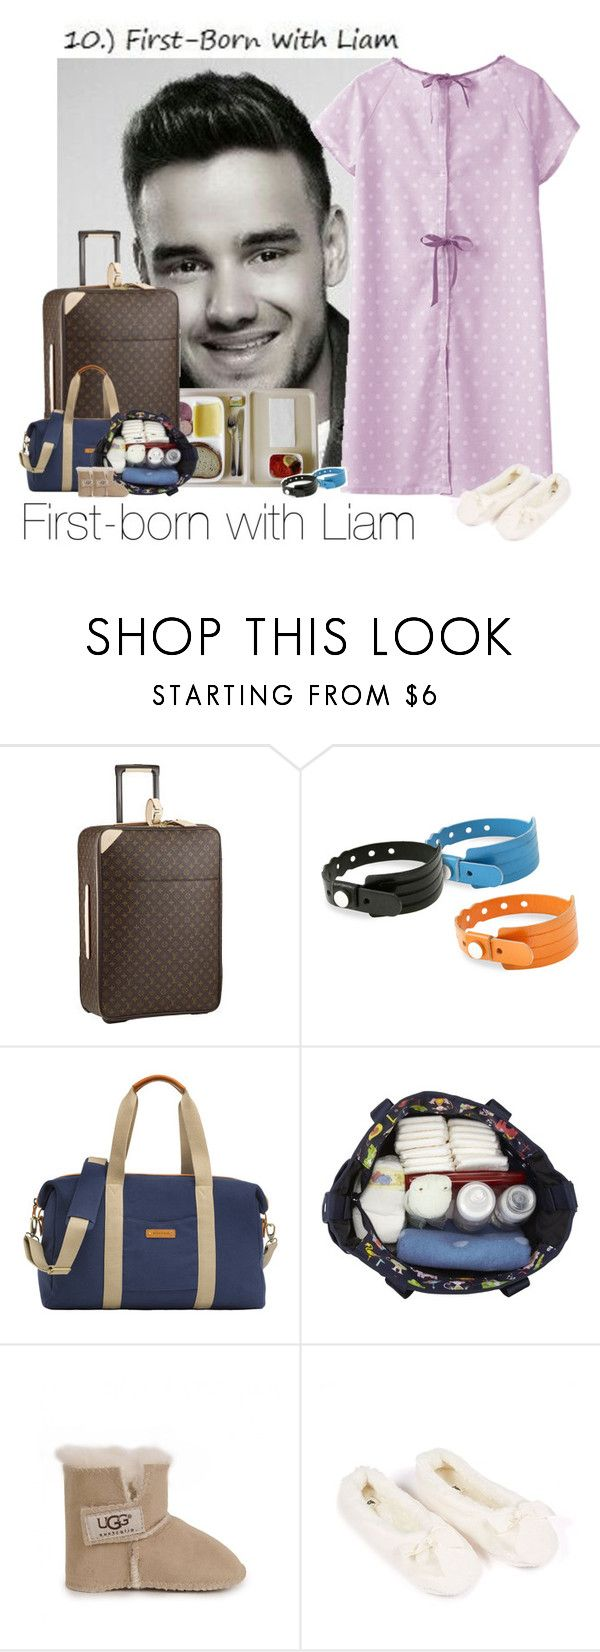 """First-born with Liam -day 10"" by haushuahusahuhushu ❤ liked on Polyvore featuring Louis Vuitton, Cast of Vices, Storksak, LeSportsac, UGG Australia, LiamPayne and daysofourlives"